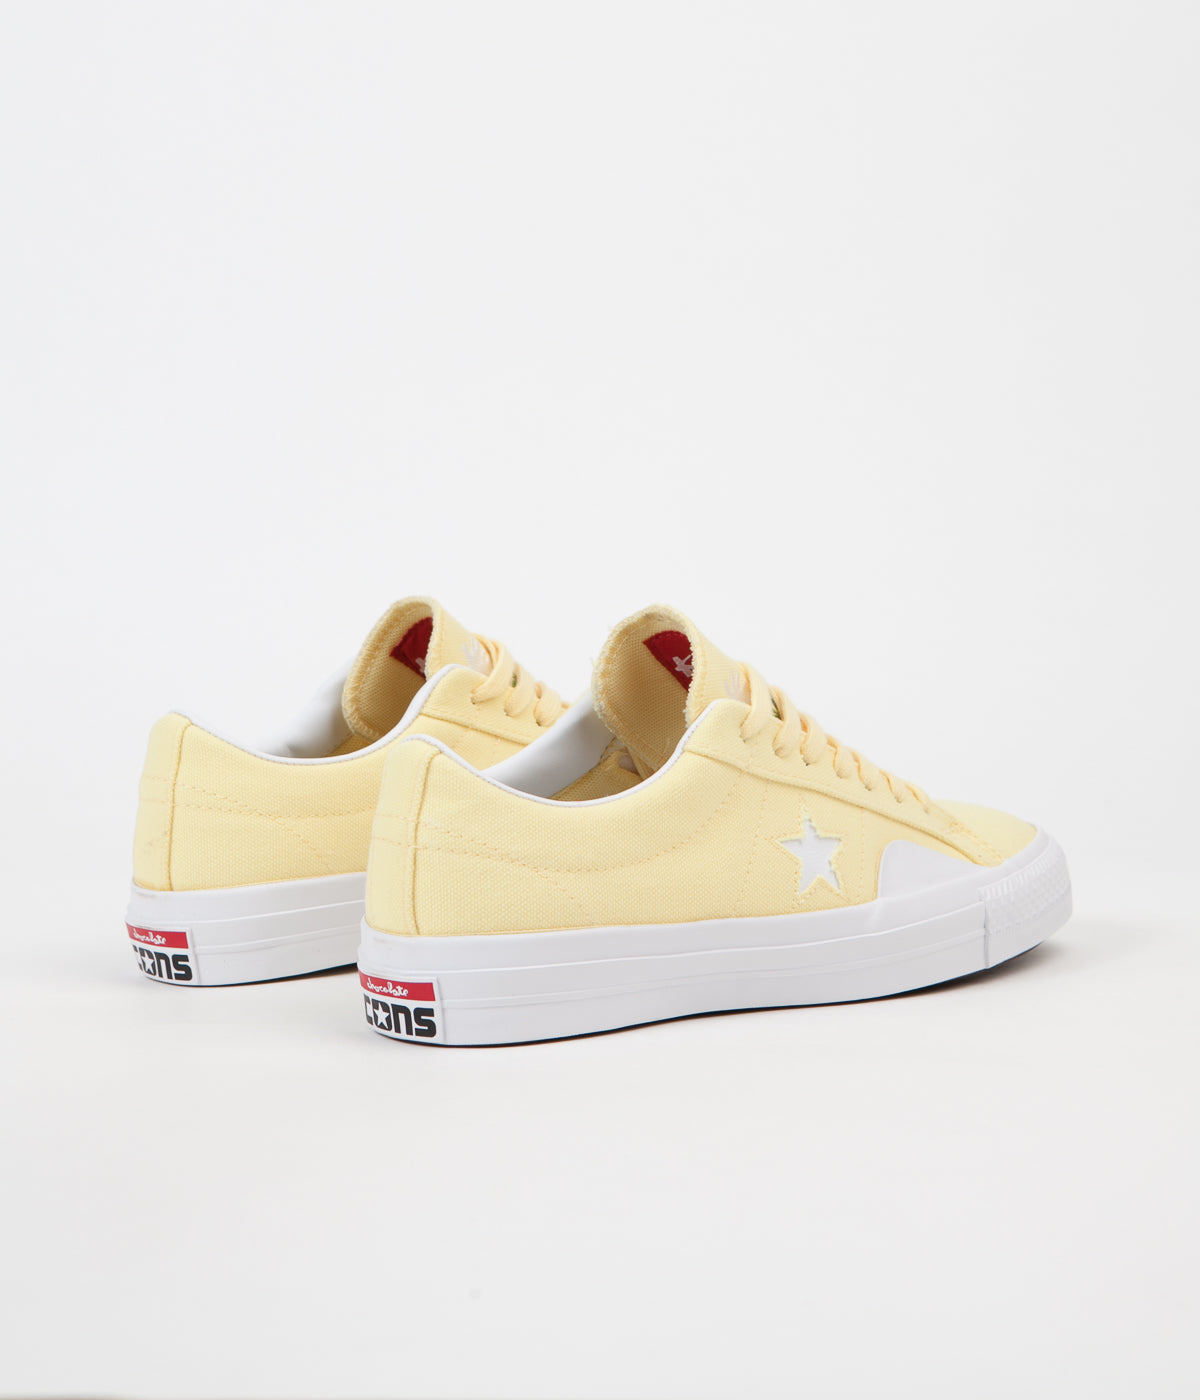 Converse x Chocolate One Star Pro Ox Shoes - Yellow / White / Days Ahead